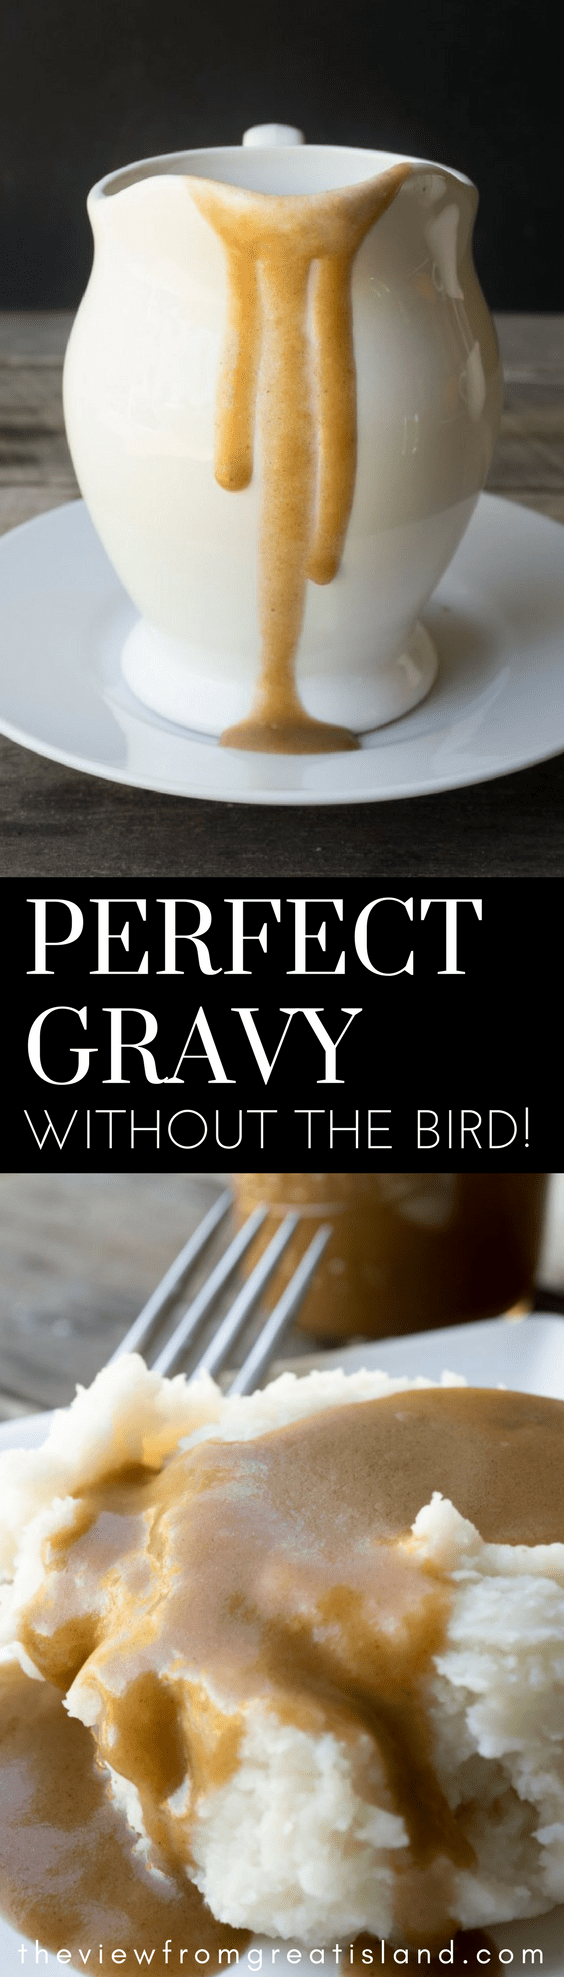 Perfect Gravy Without the Bird ~ an easy no drippings gravy recipe that you can make without roasting an entire turkey! This quick browned flour gravy will be your new best friend for the holidays and weeknight dinners all year long. #easygravy #instantgravy #gravy #bestgravy #Thanksgiving #Christmas #nodrippingsgravy #brownedflour #pangravy #homemadegravy